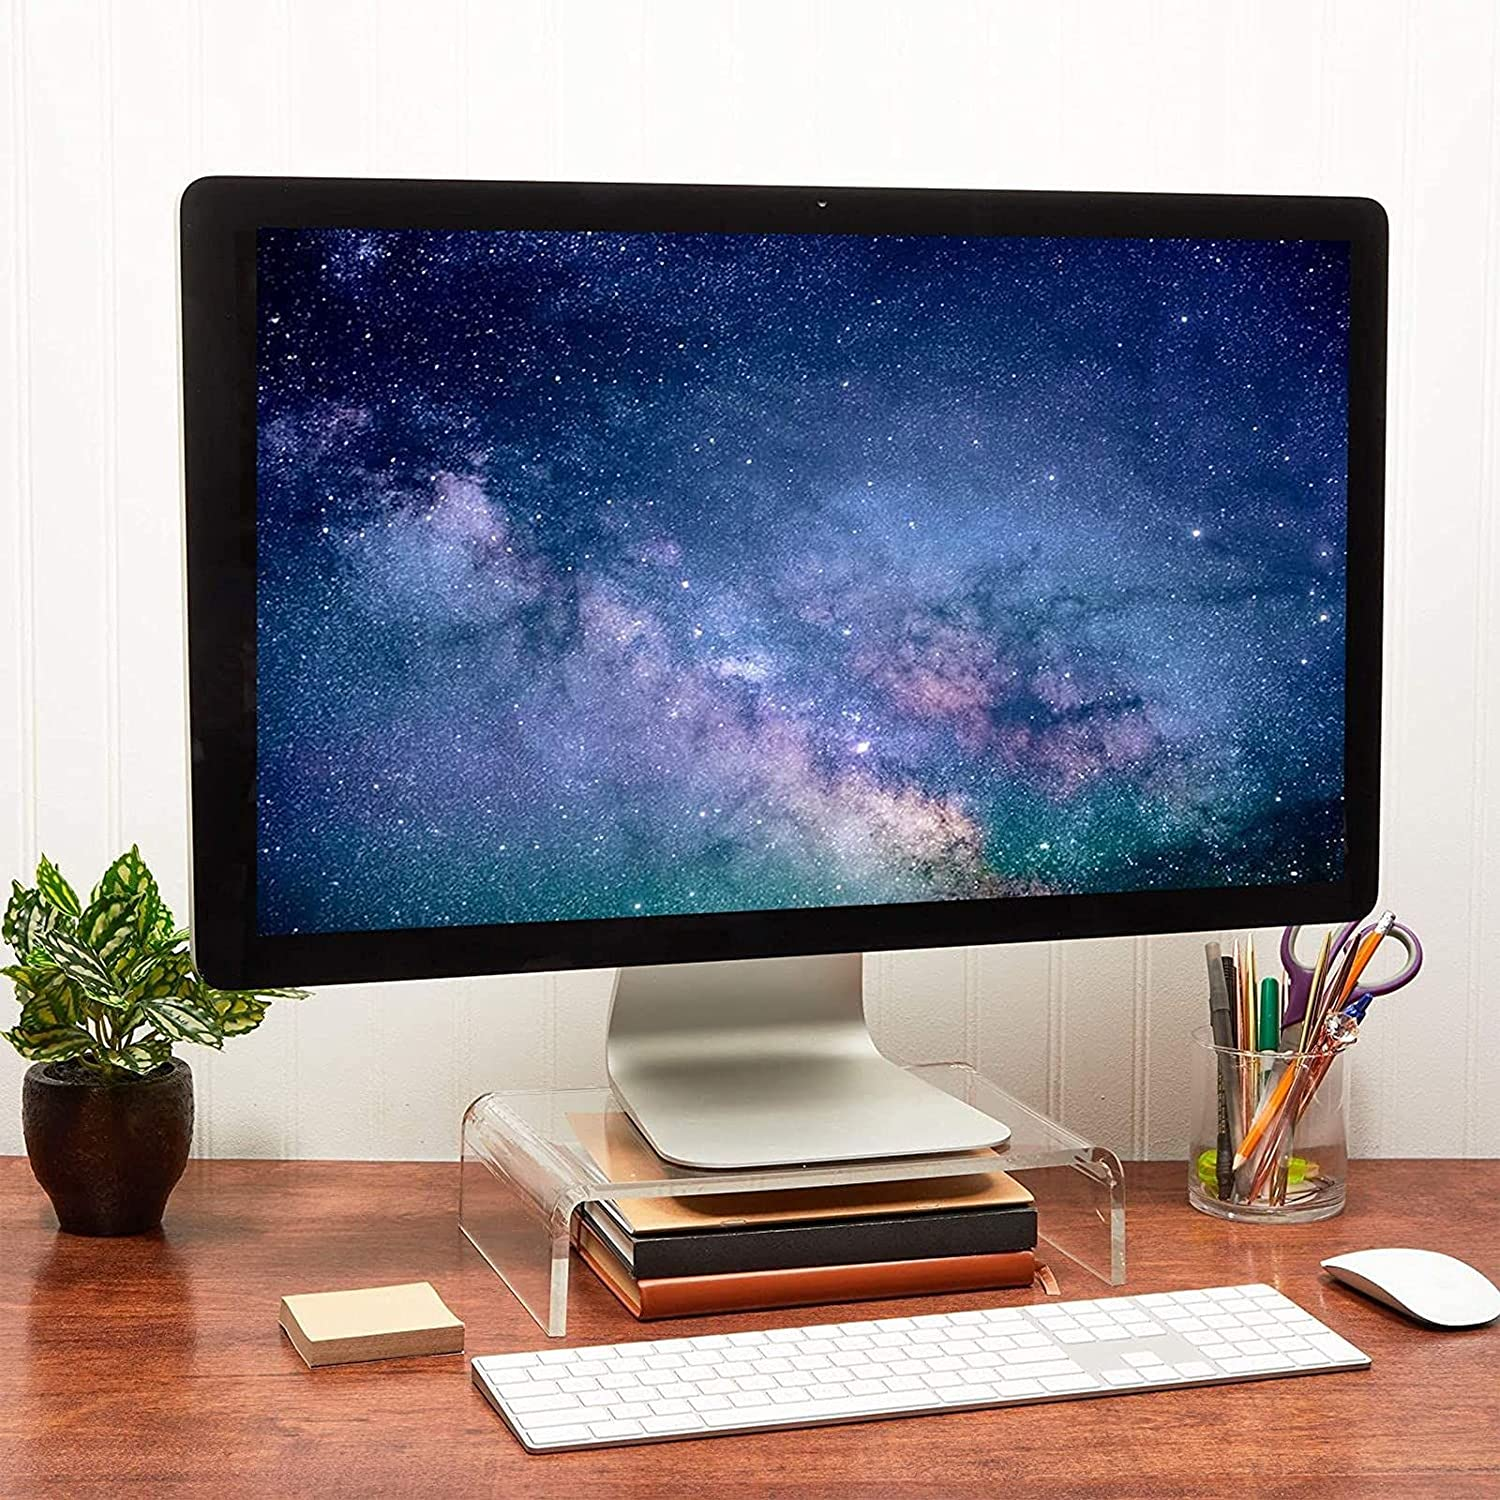 Acrylic Computer Monitor Stand, Clear Display Riser (12 x 8 x 3 in)